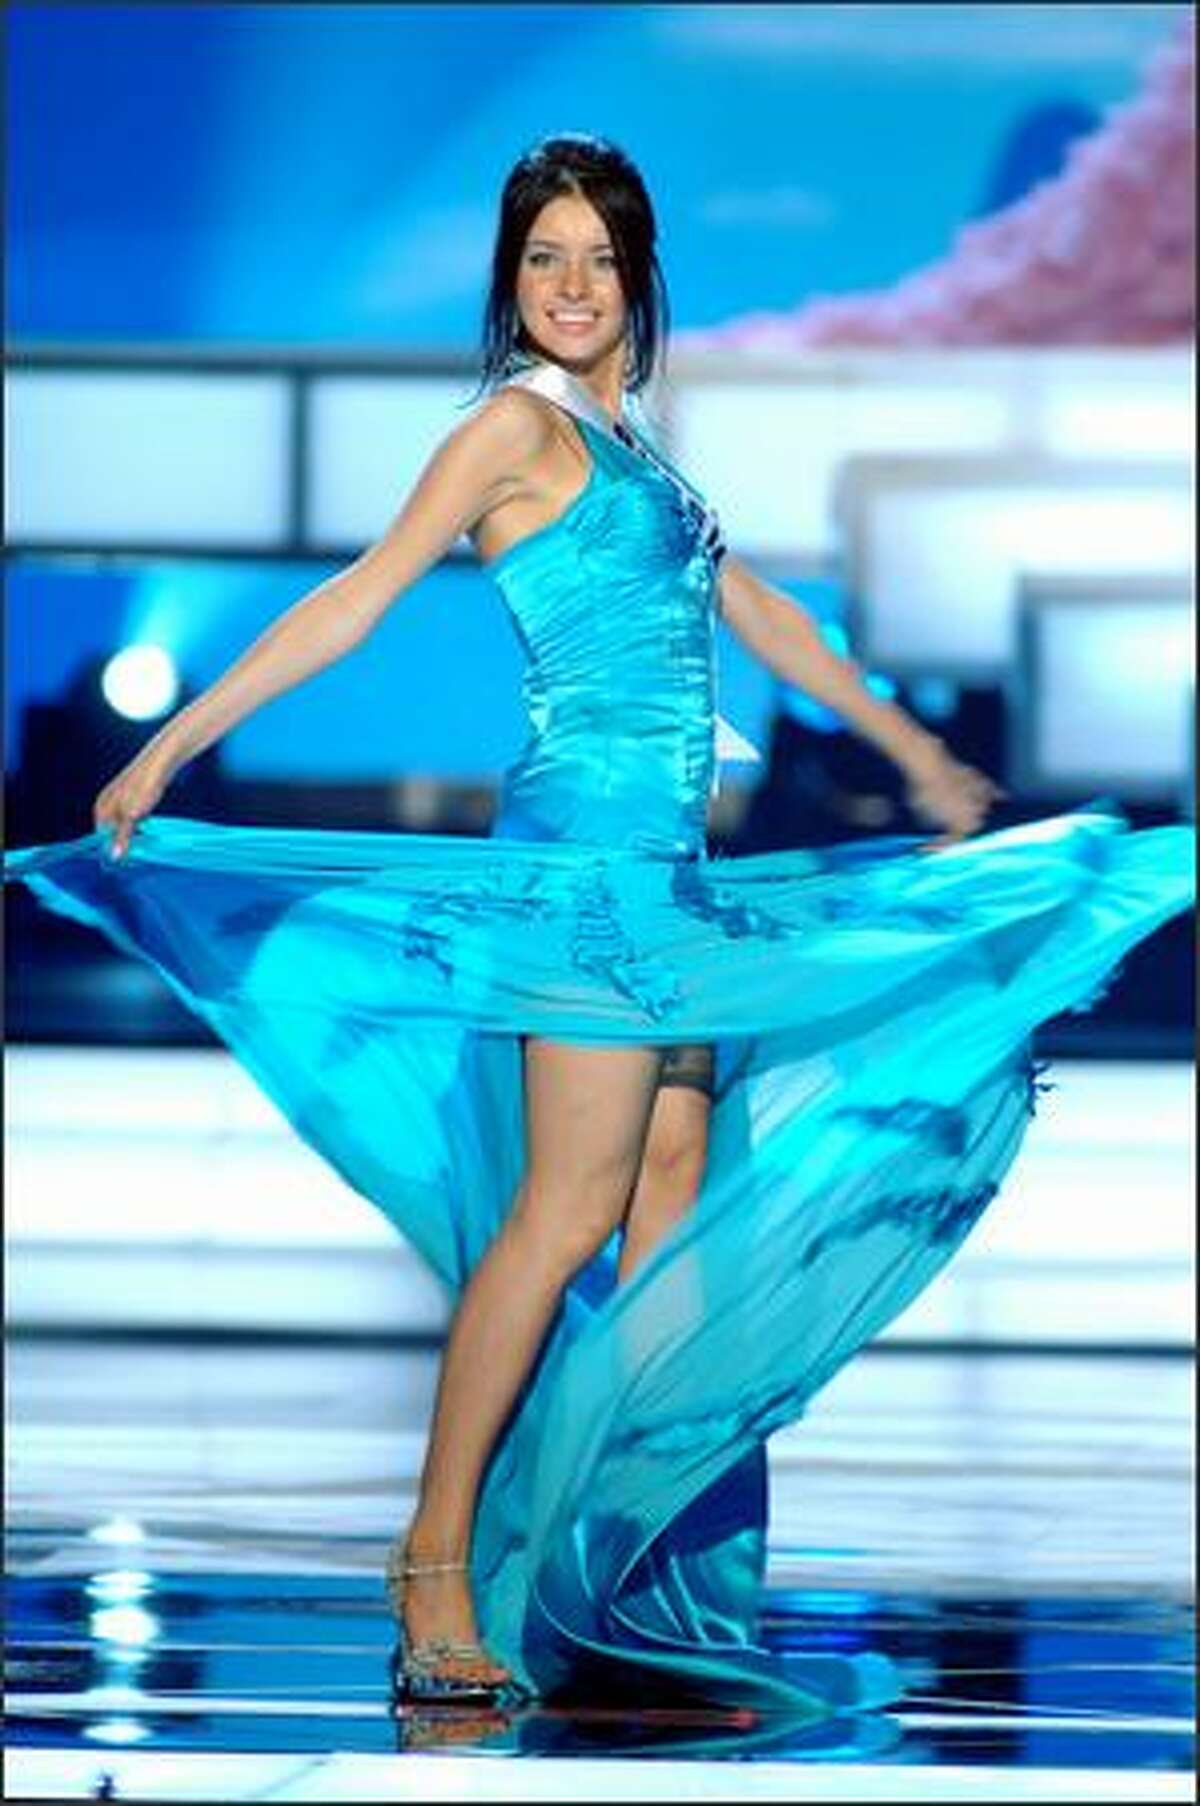 Natalia Nikolaeva, Miss Russia, competes in an evening gown of her choice during the 2005 Miss Universe Presentation Show at Impact Arena, Exhibition and Convention Center in Bangkok, Thailand on May 26. During the presentation show, each contestant was judged by a preliminary panel of six judges in swimsuit and evening gown categories, after two days of one-on-one interviews. The scores will be tallied and the top 15 contestants will be announced during Monday's telecast (NBC, tape-delayed to 9 p.m. PDT), at the conclusion of which a winner will be crowned.